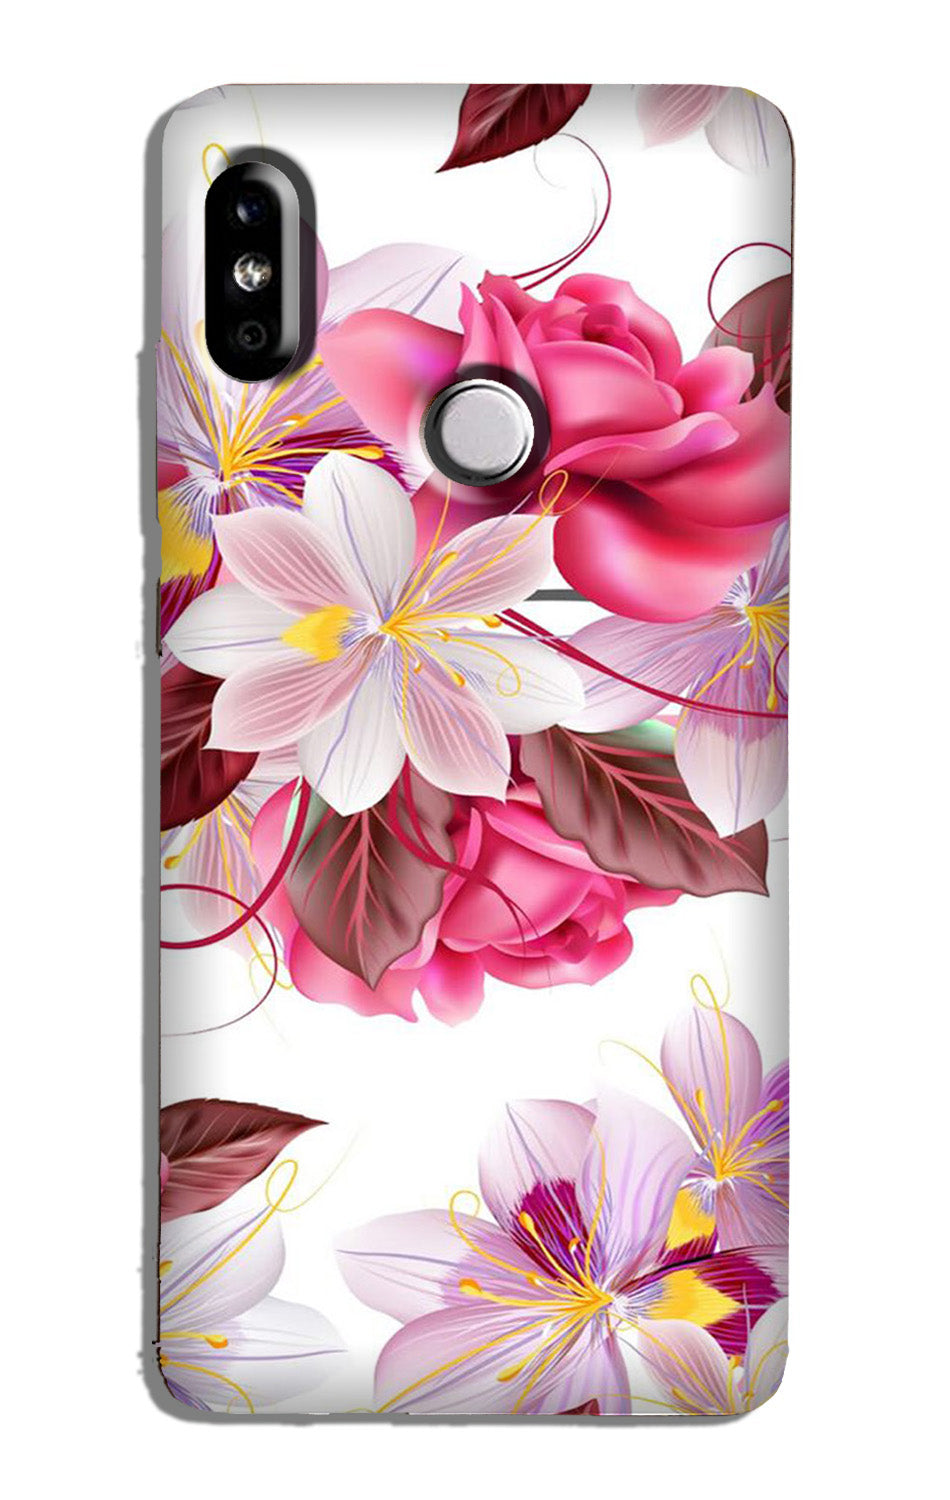 Beautiful flowers Case for Redmi Note 6 Pro